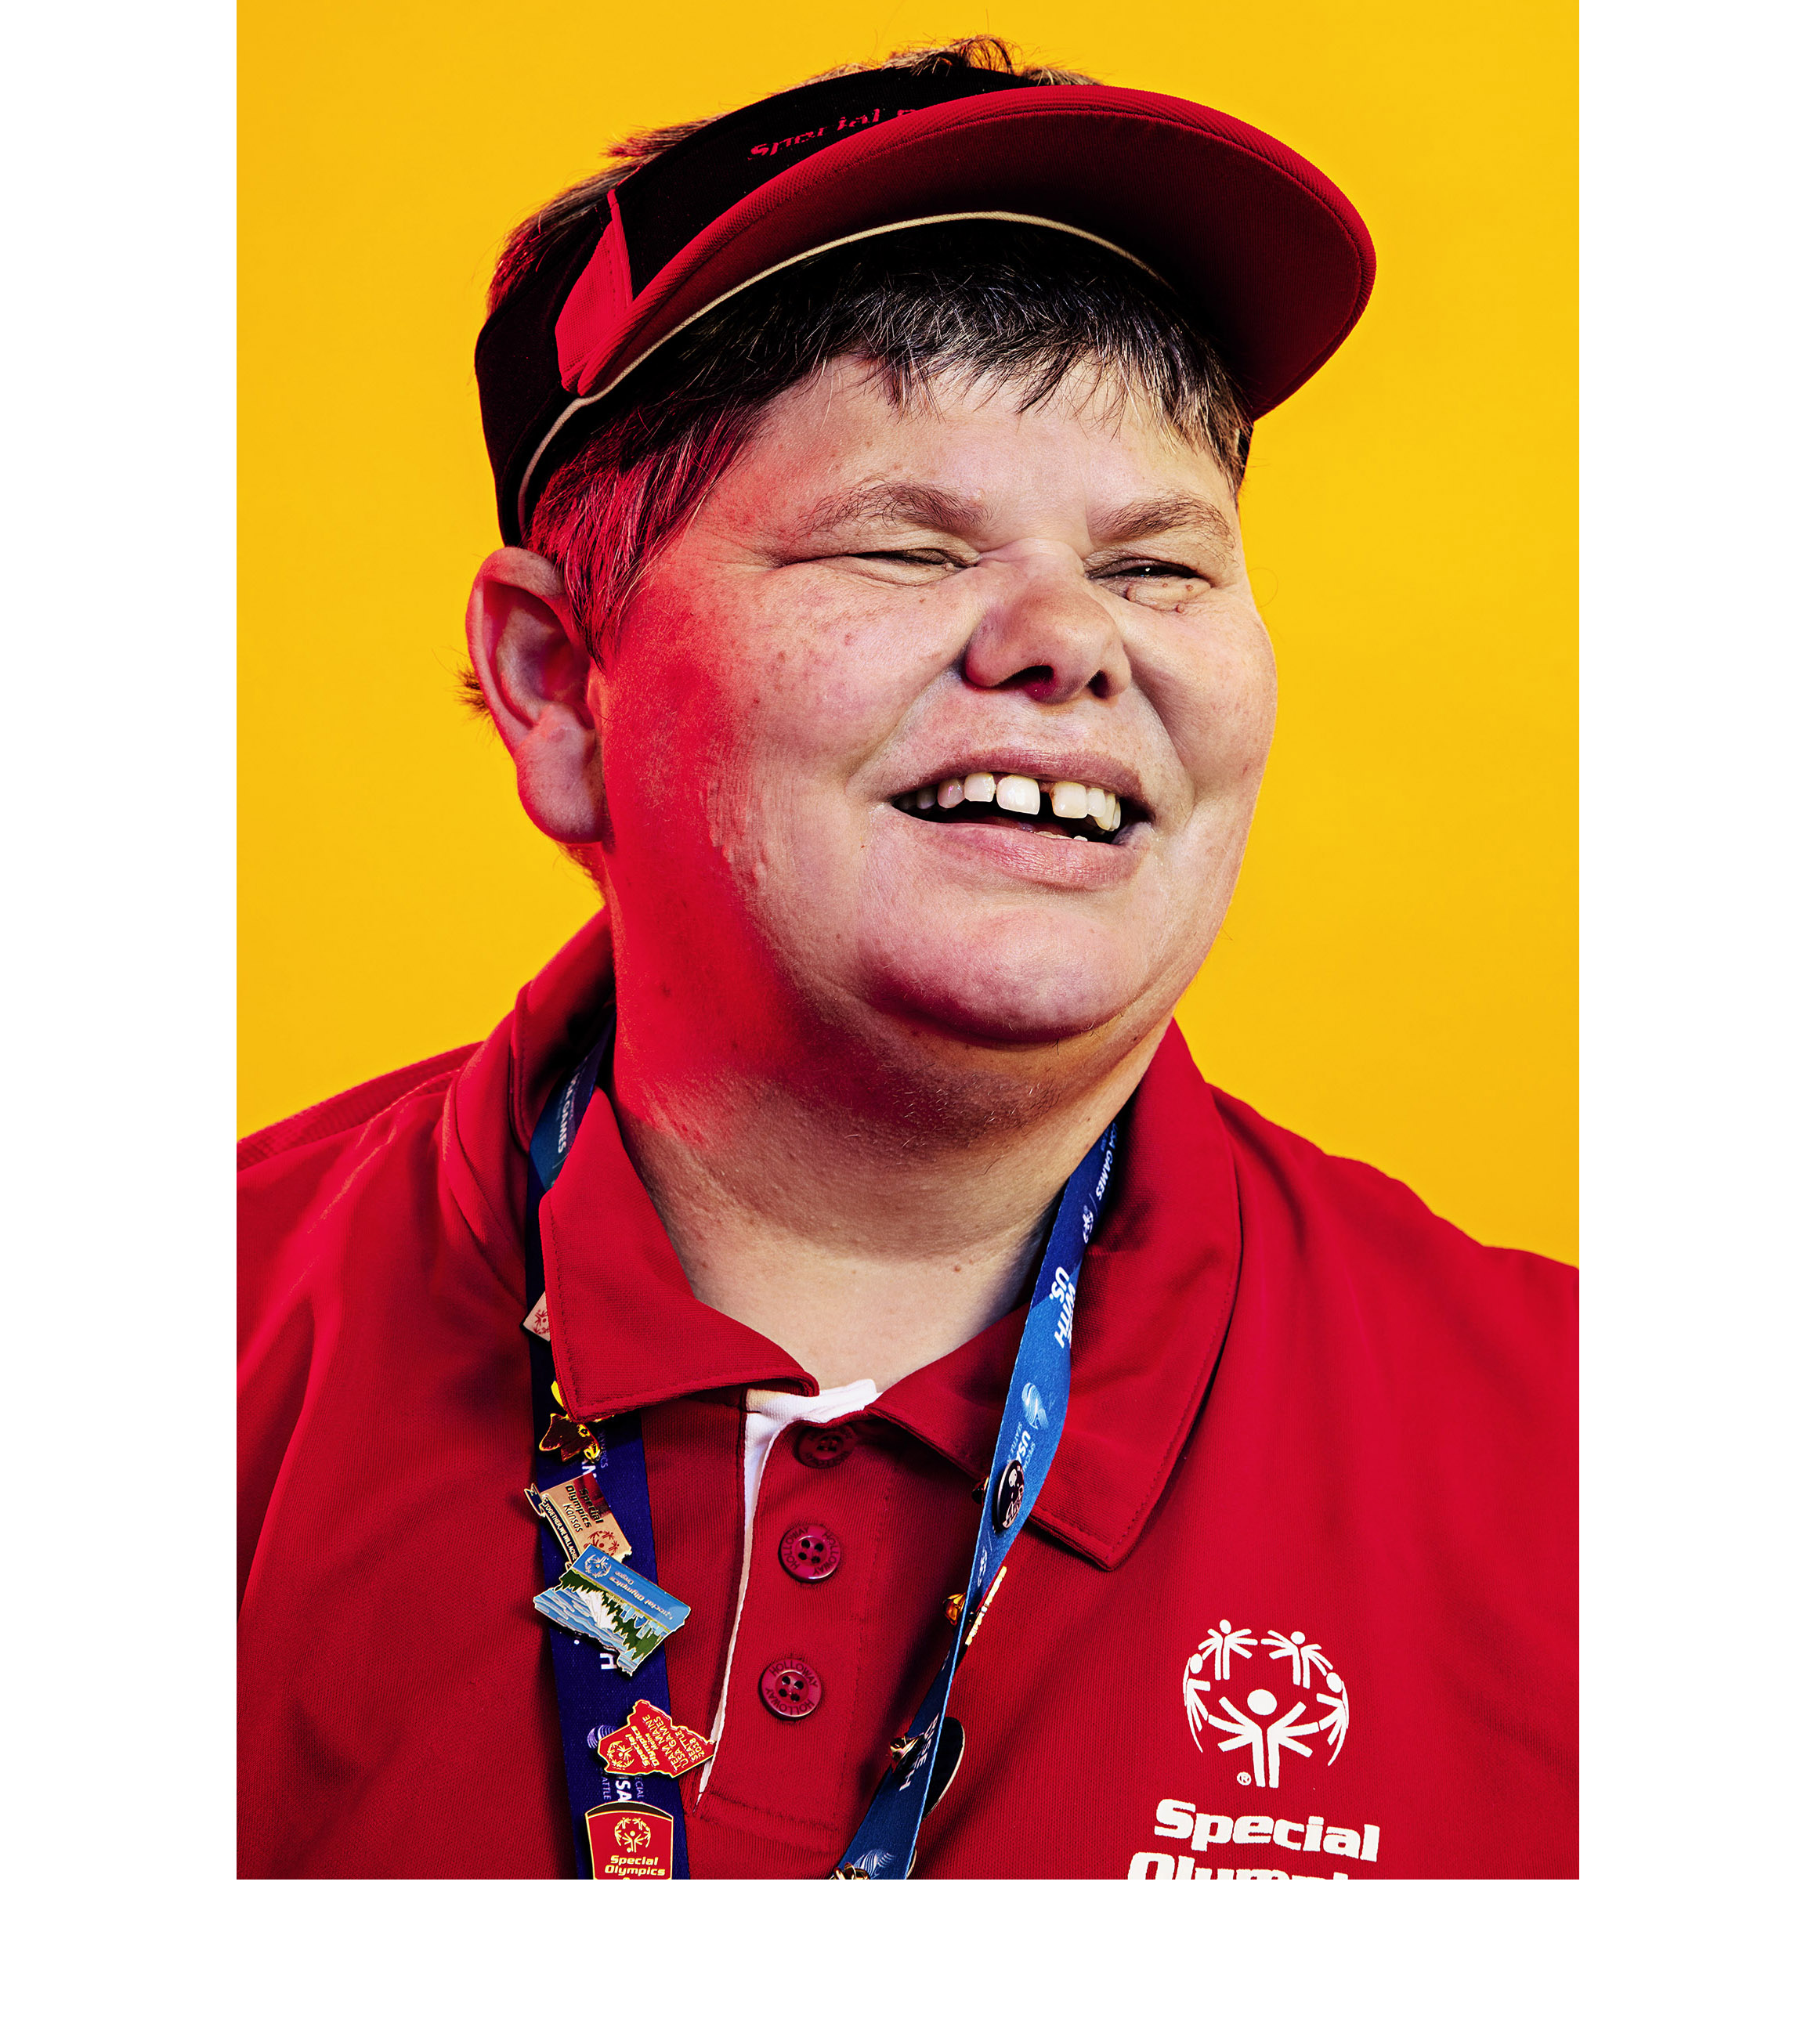 judy ryba, special olympics, quinn russell brown